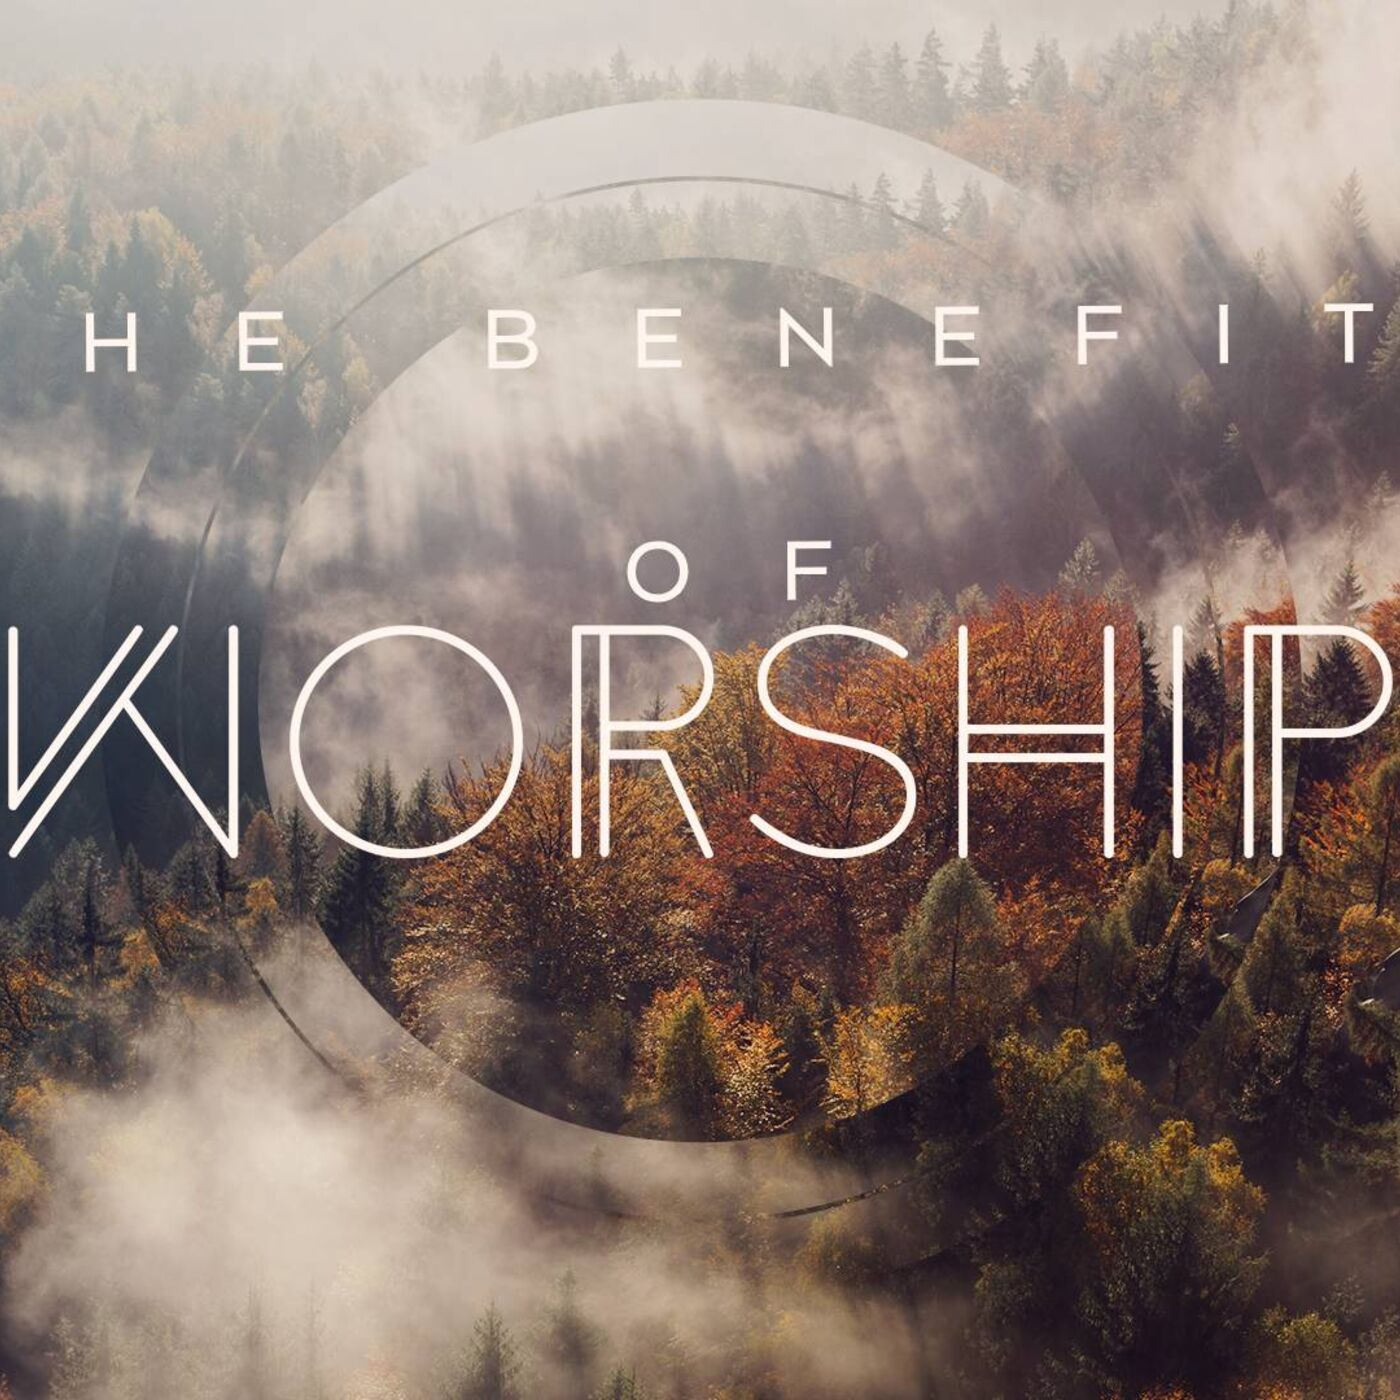 October 25, 2020: The Benefits of Worship